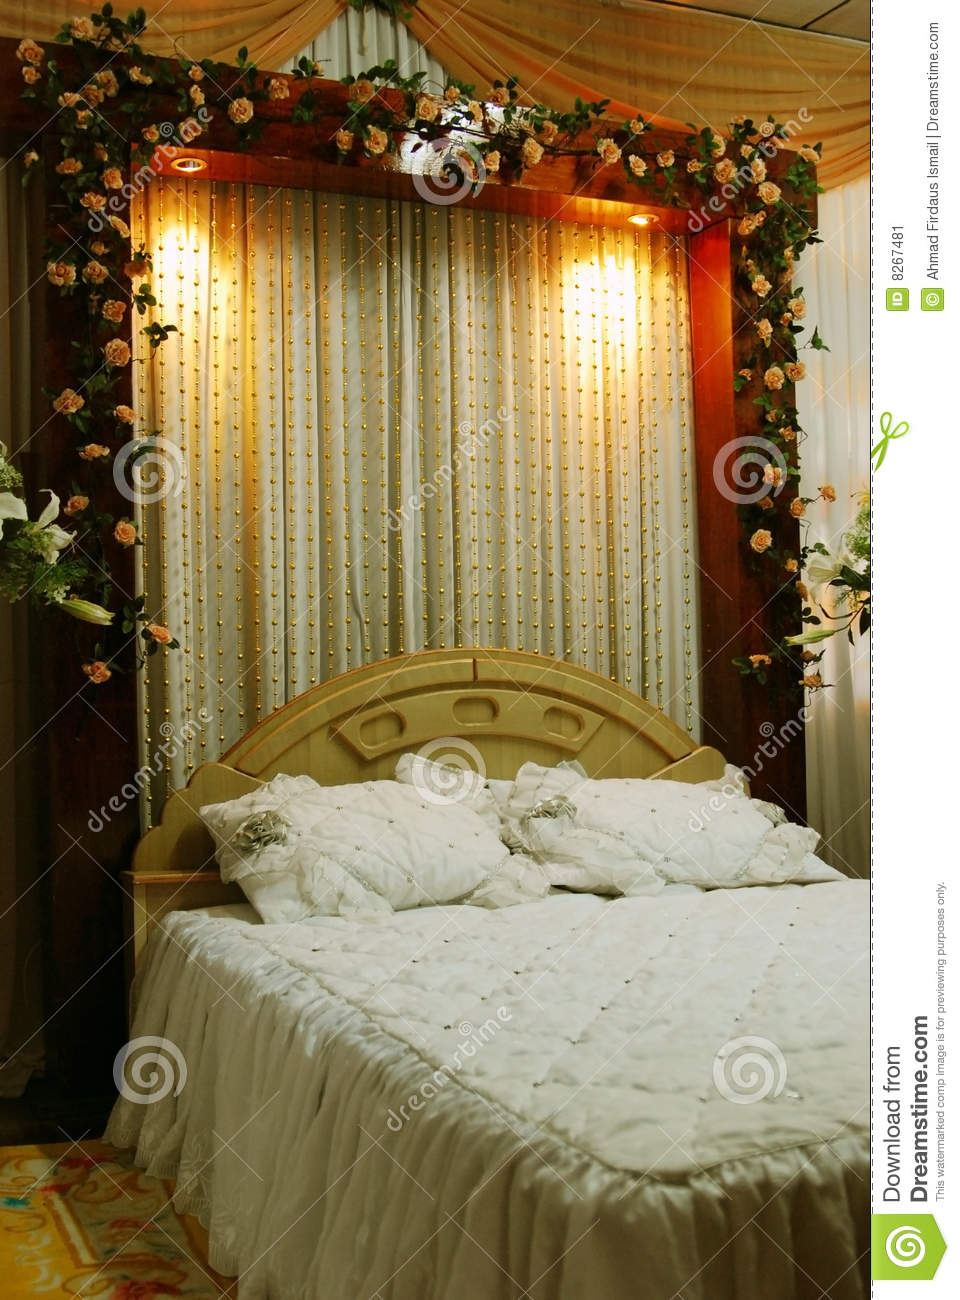 Wedding Bed Decoration Wedding Bed Decoration Stock Image Image 8267481